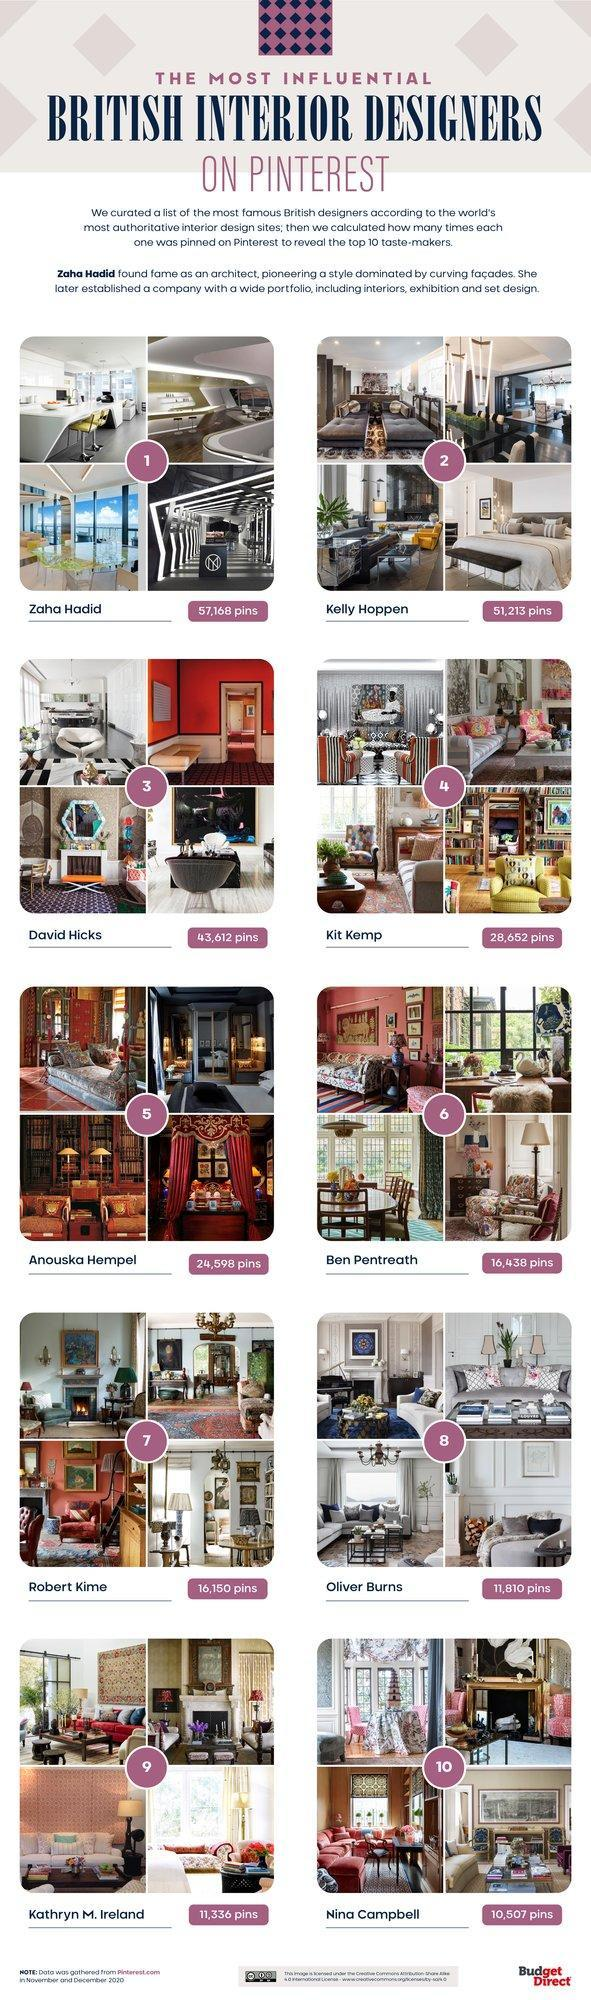 Budget Direct Home Insurance's Most Influential British Interior Designers on Pinterest